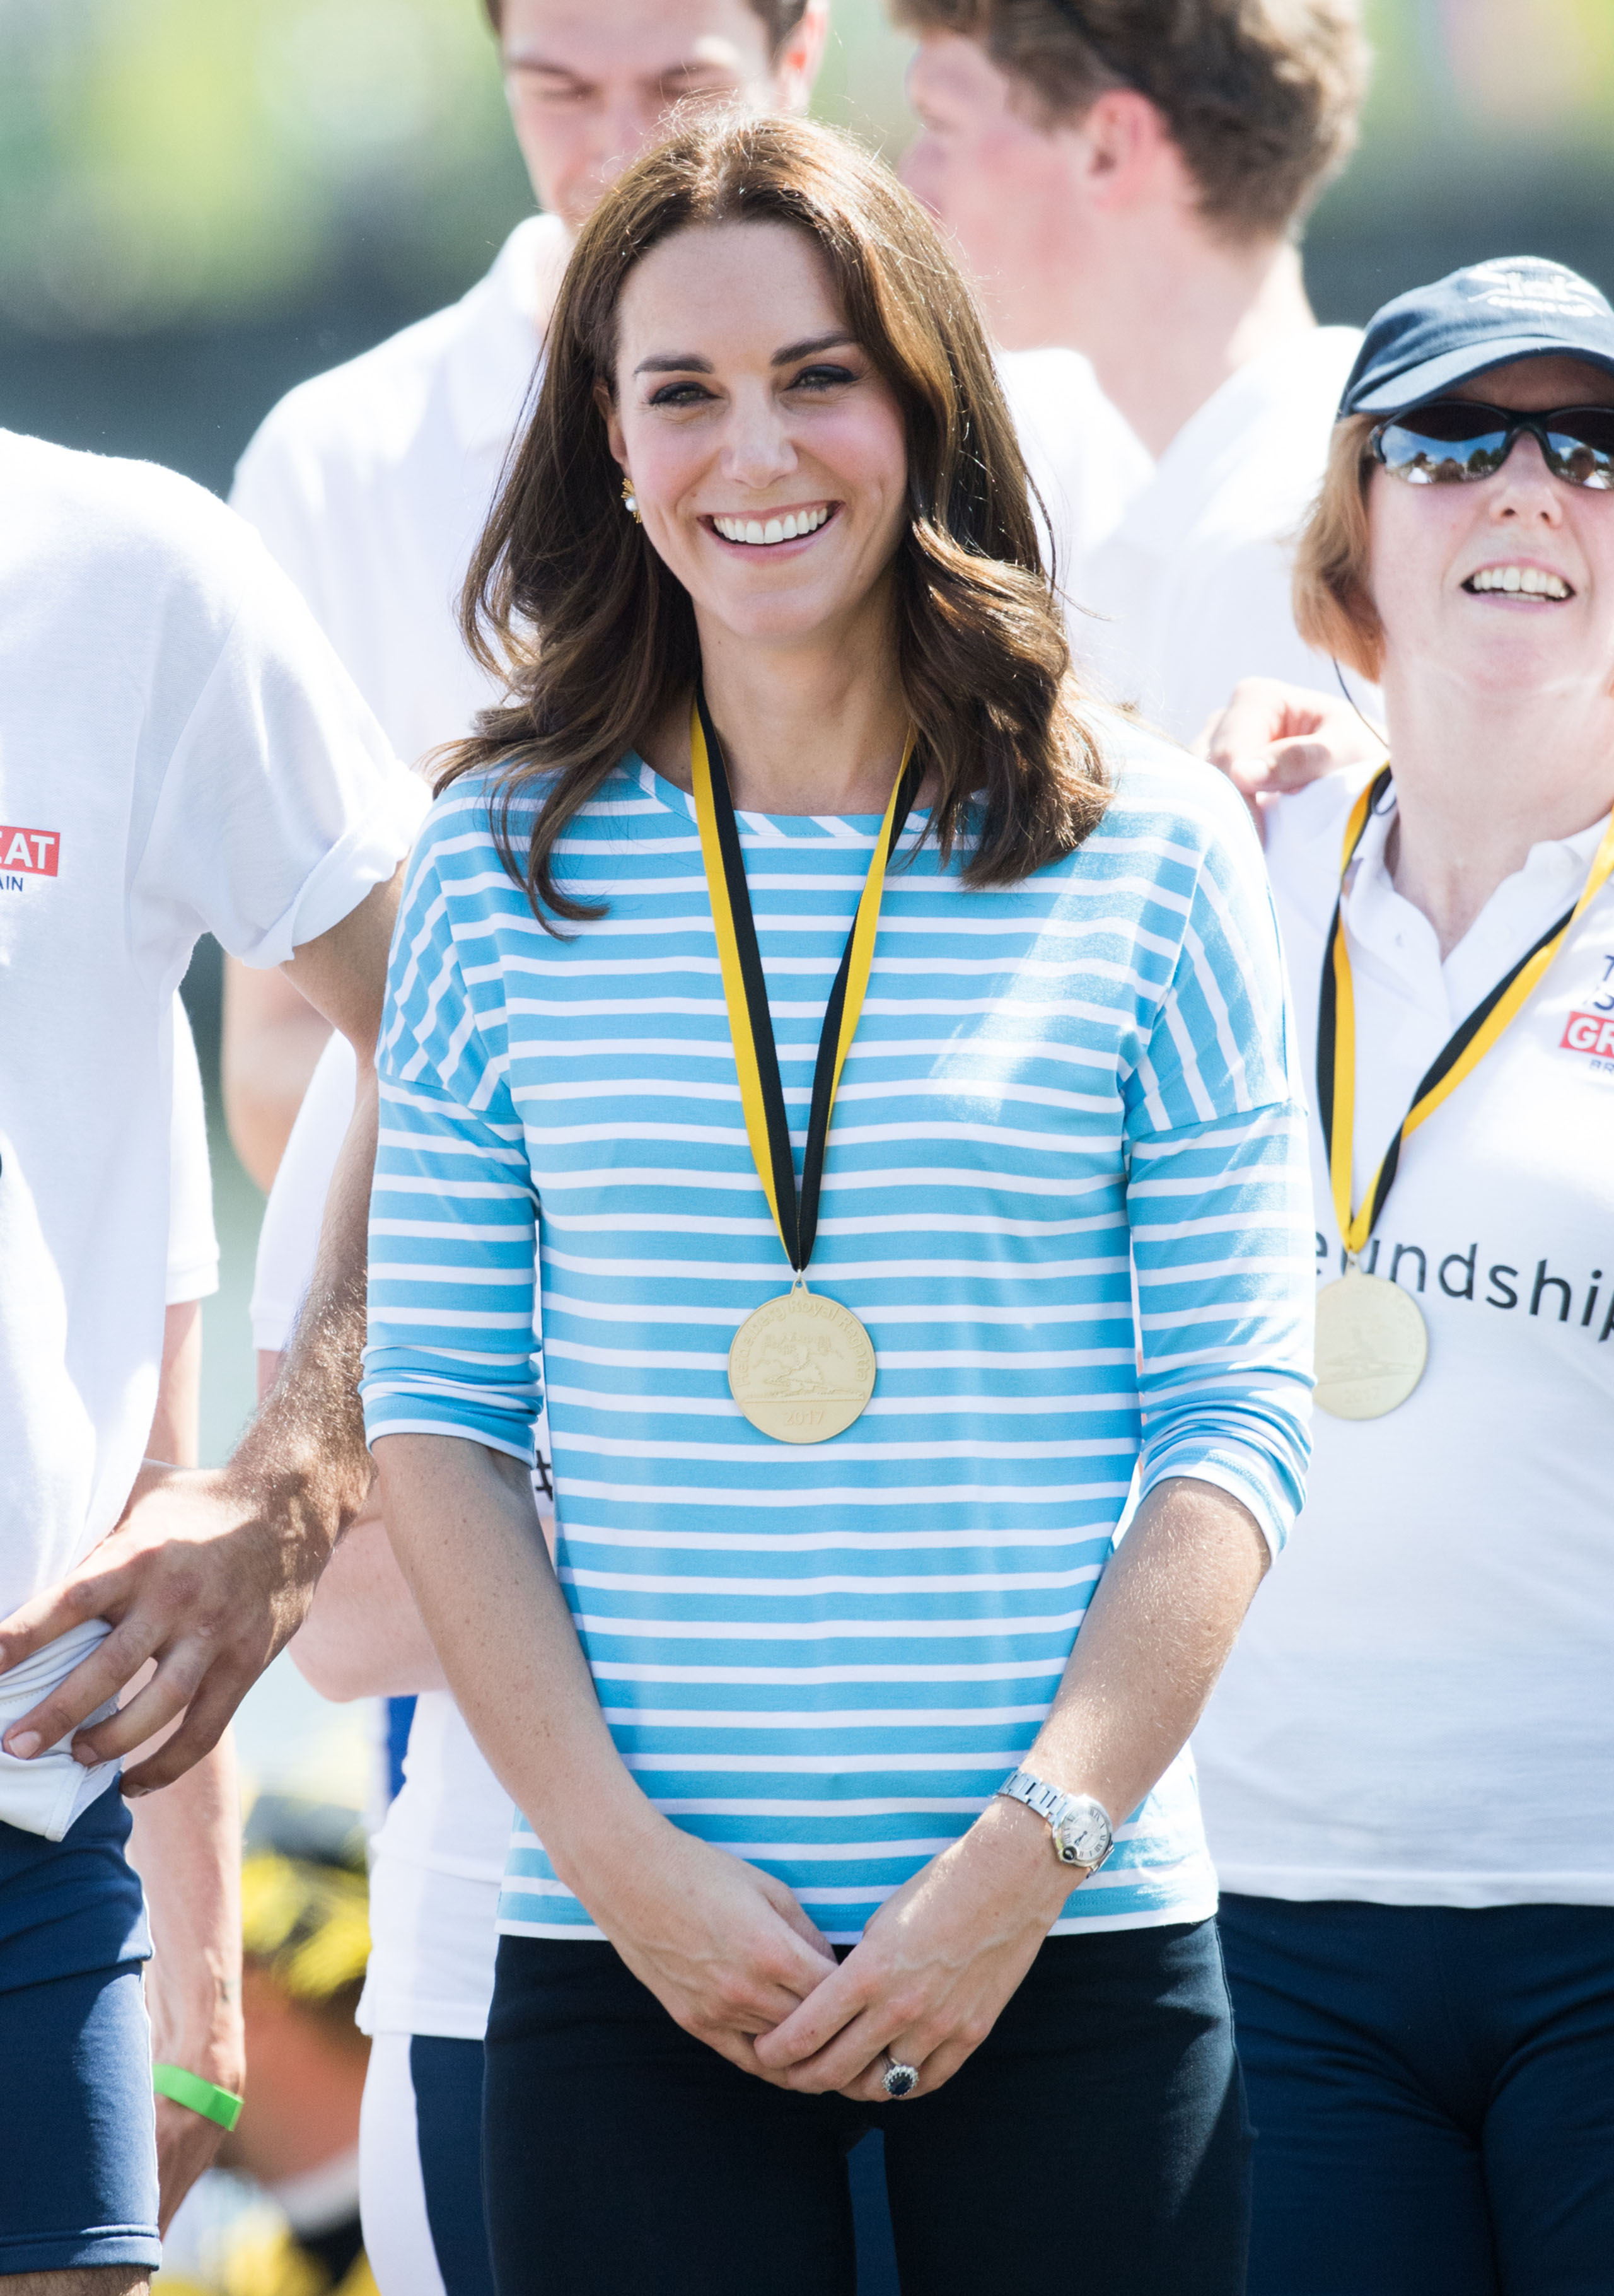 Catherine, Duchess of Cambridge after participating in a rowing race between the twinned town of Cambridge and Heidelberg during an official visit to Poland and Germany on July 20, 2017.